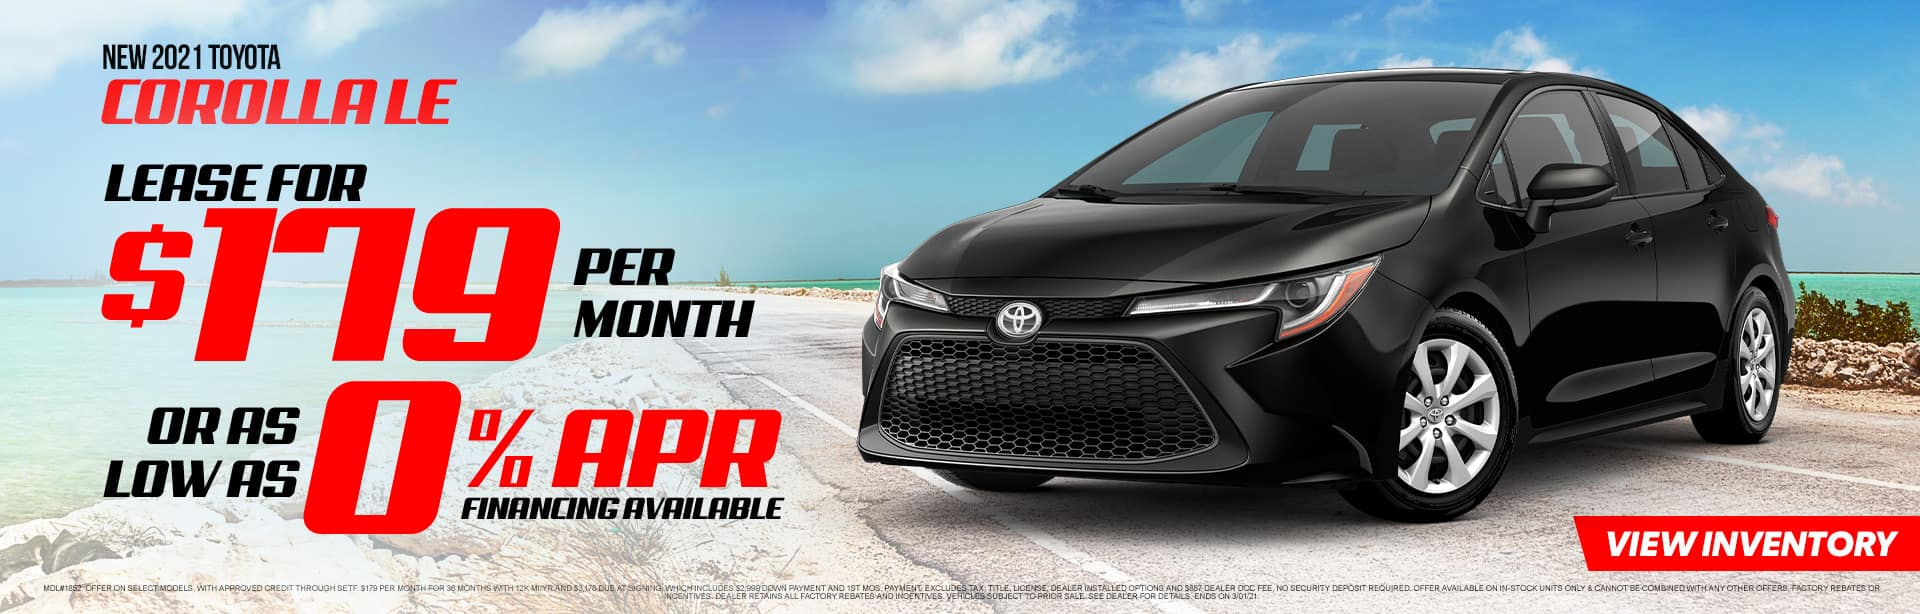 NEW 2021 TOYOTA COROLLA LE | THE YEAR OF THE TOYOTA